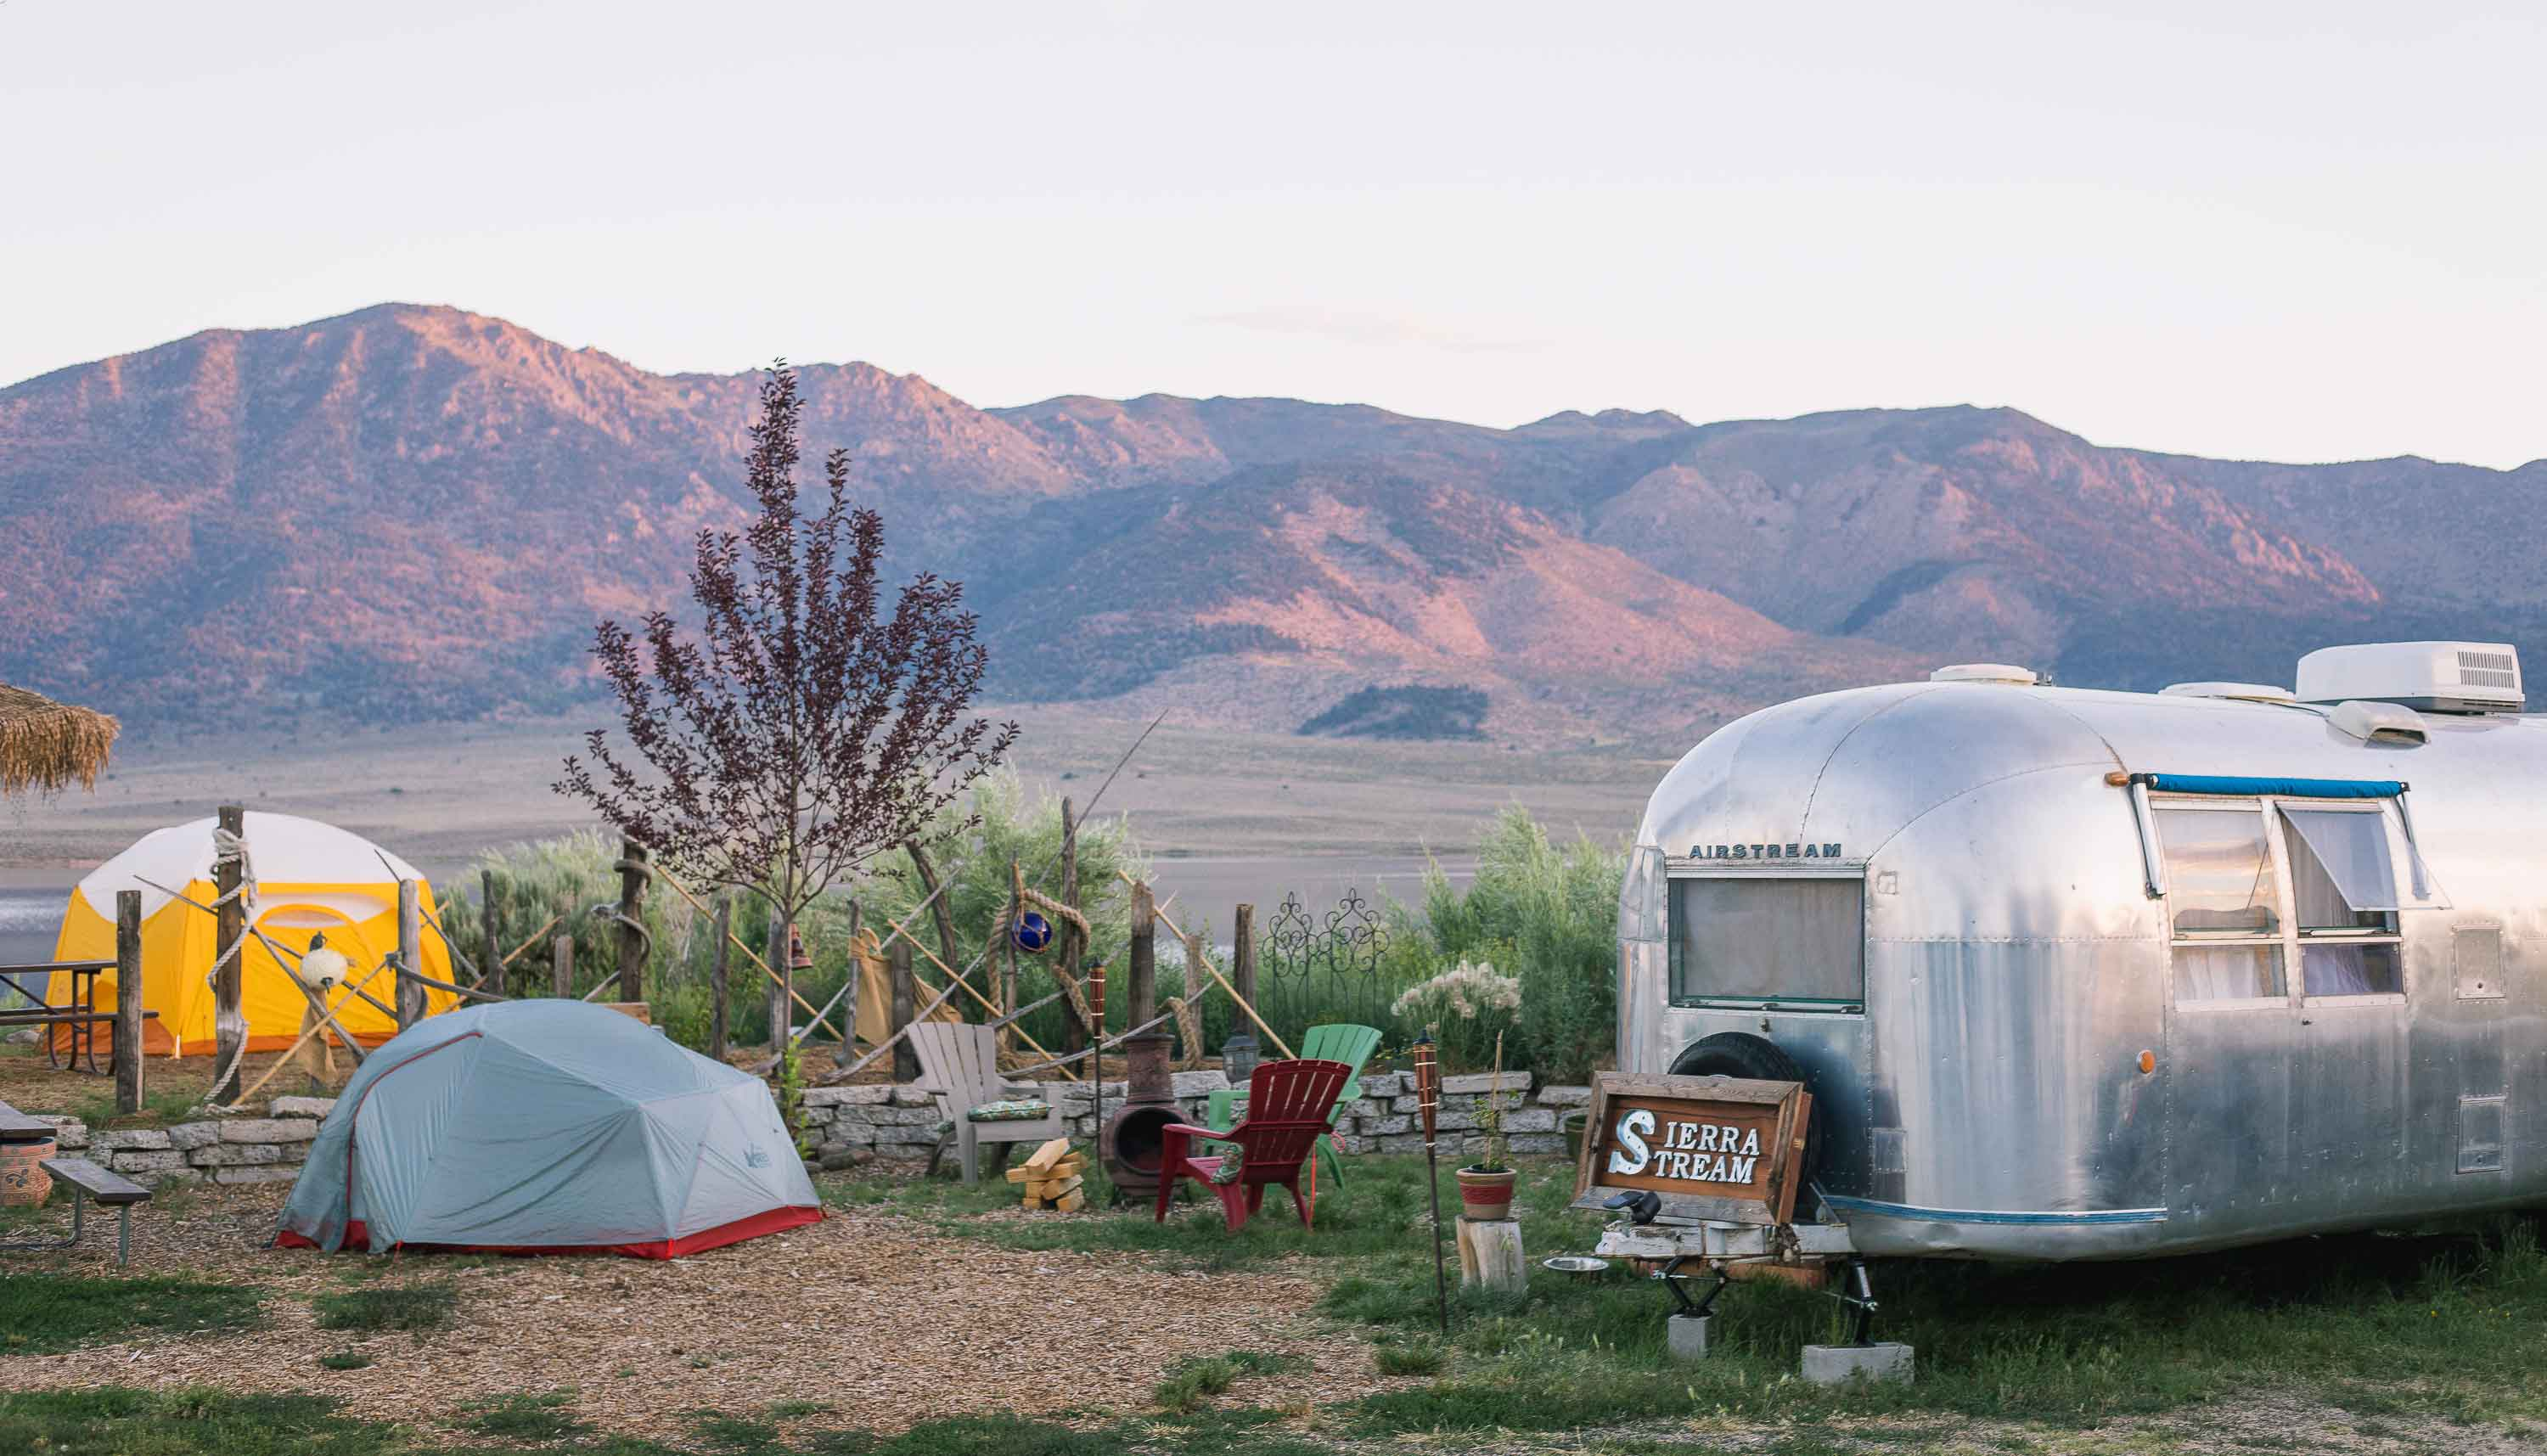 Hipcamp $25 Million Funding Is 'Vote of Confidence' in the Outdoors